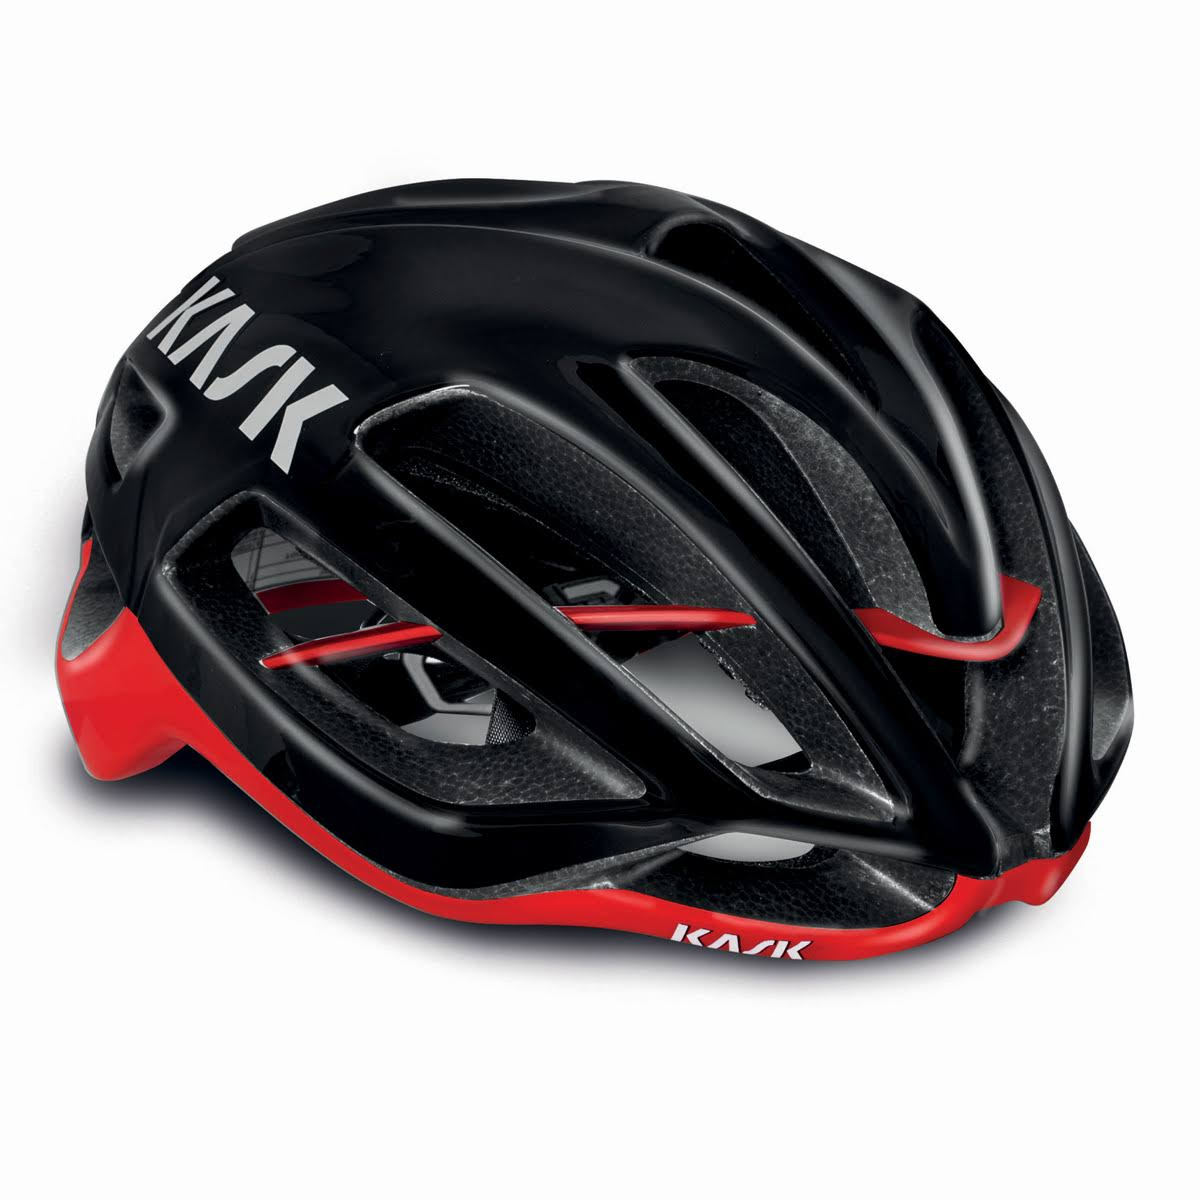 Kask Protone Cycling Helmet - Black and Red, Medium